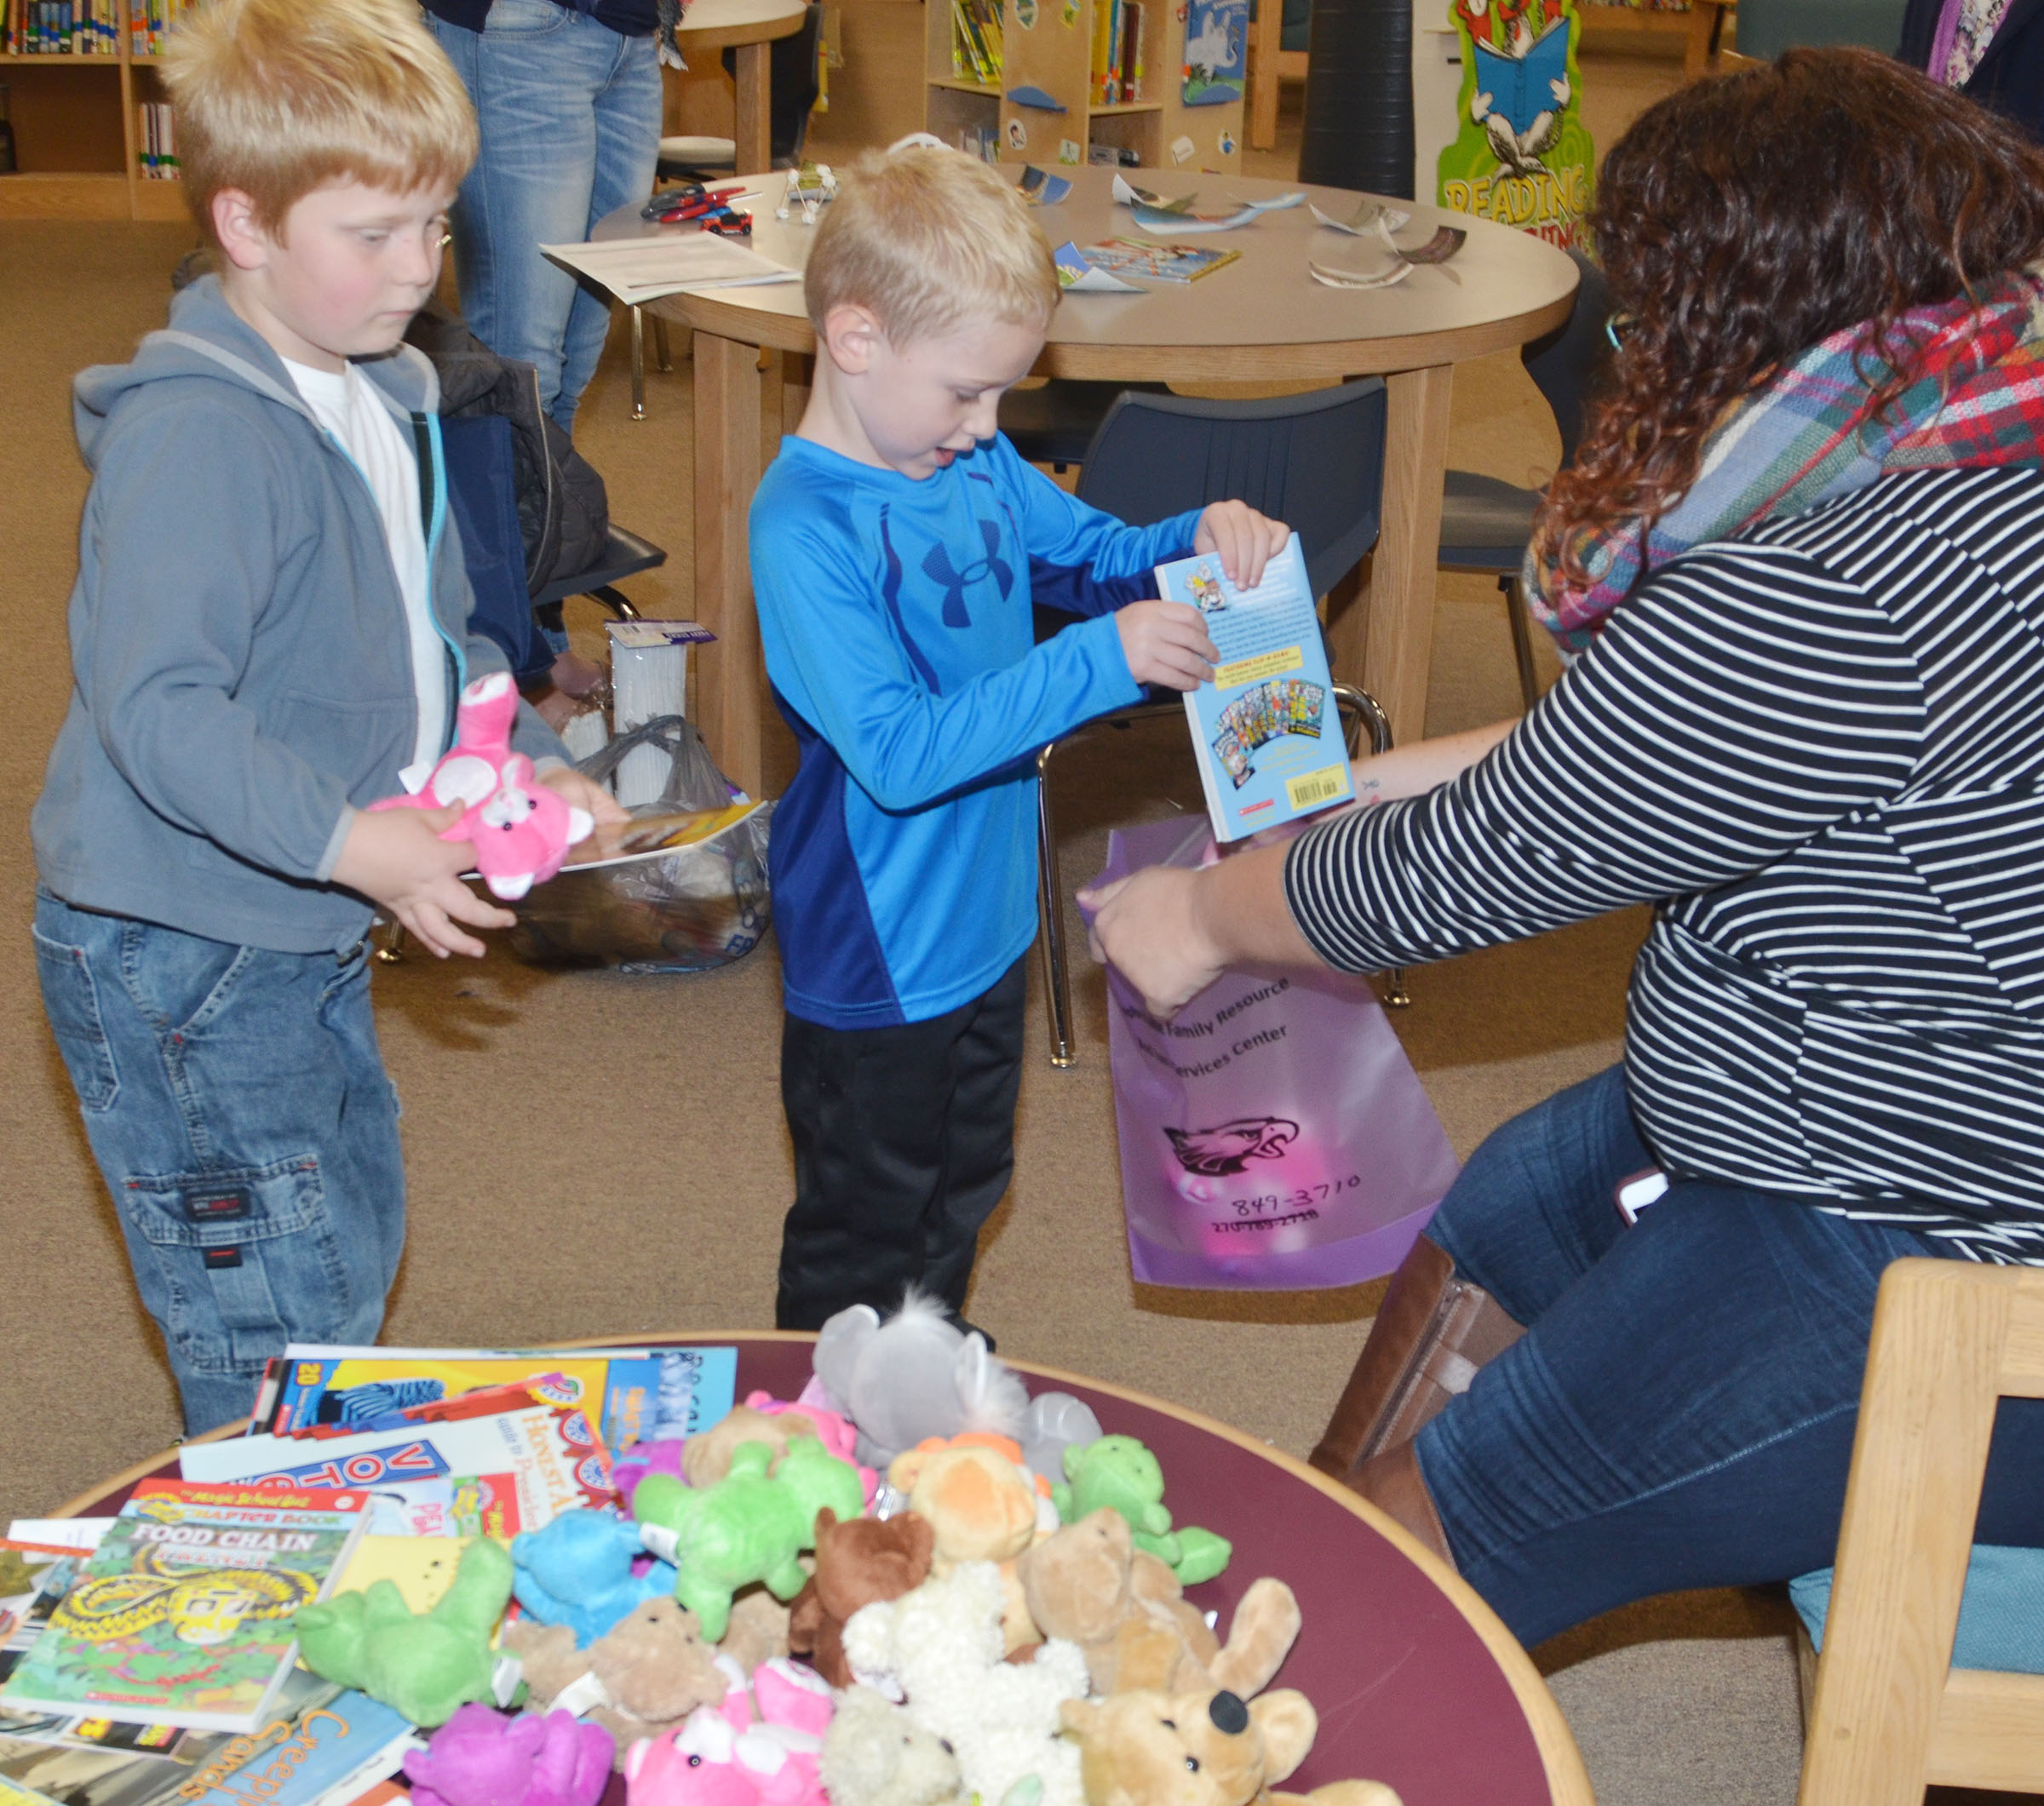 Lydia Rakes, who works with AmeriCorps at CES, helps first-grader Ben Parrott, at left, and kindergartener Jackson Wright choose their book and teddy bear.